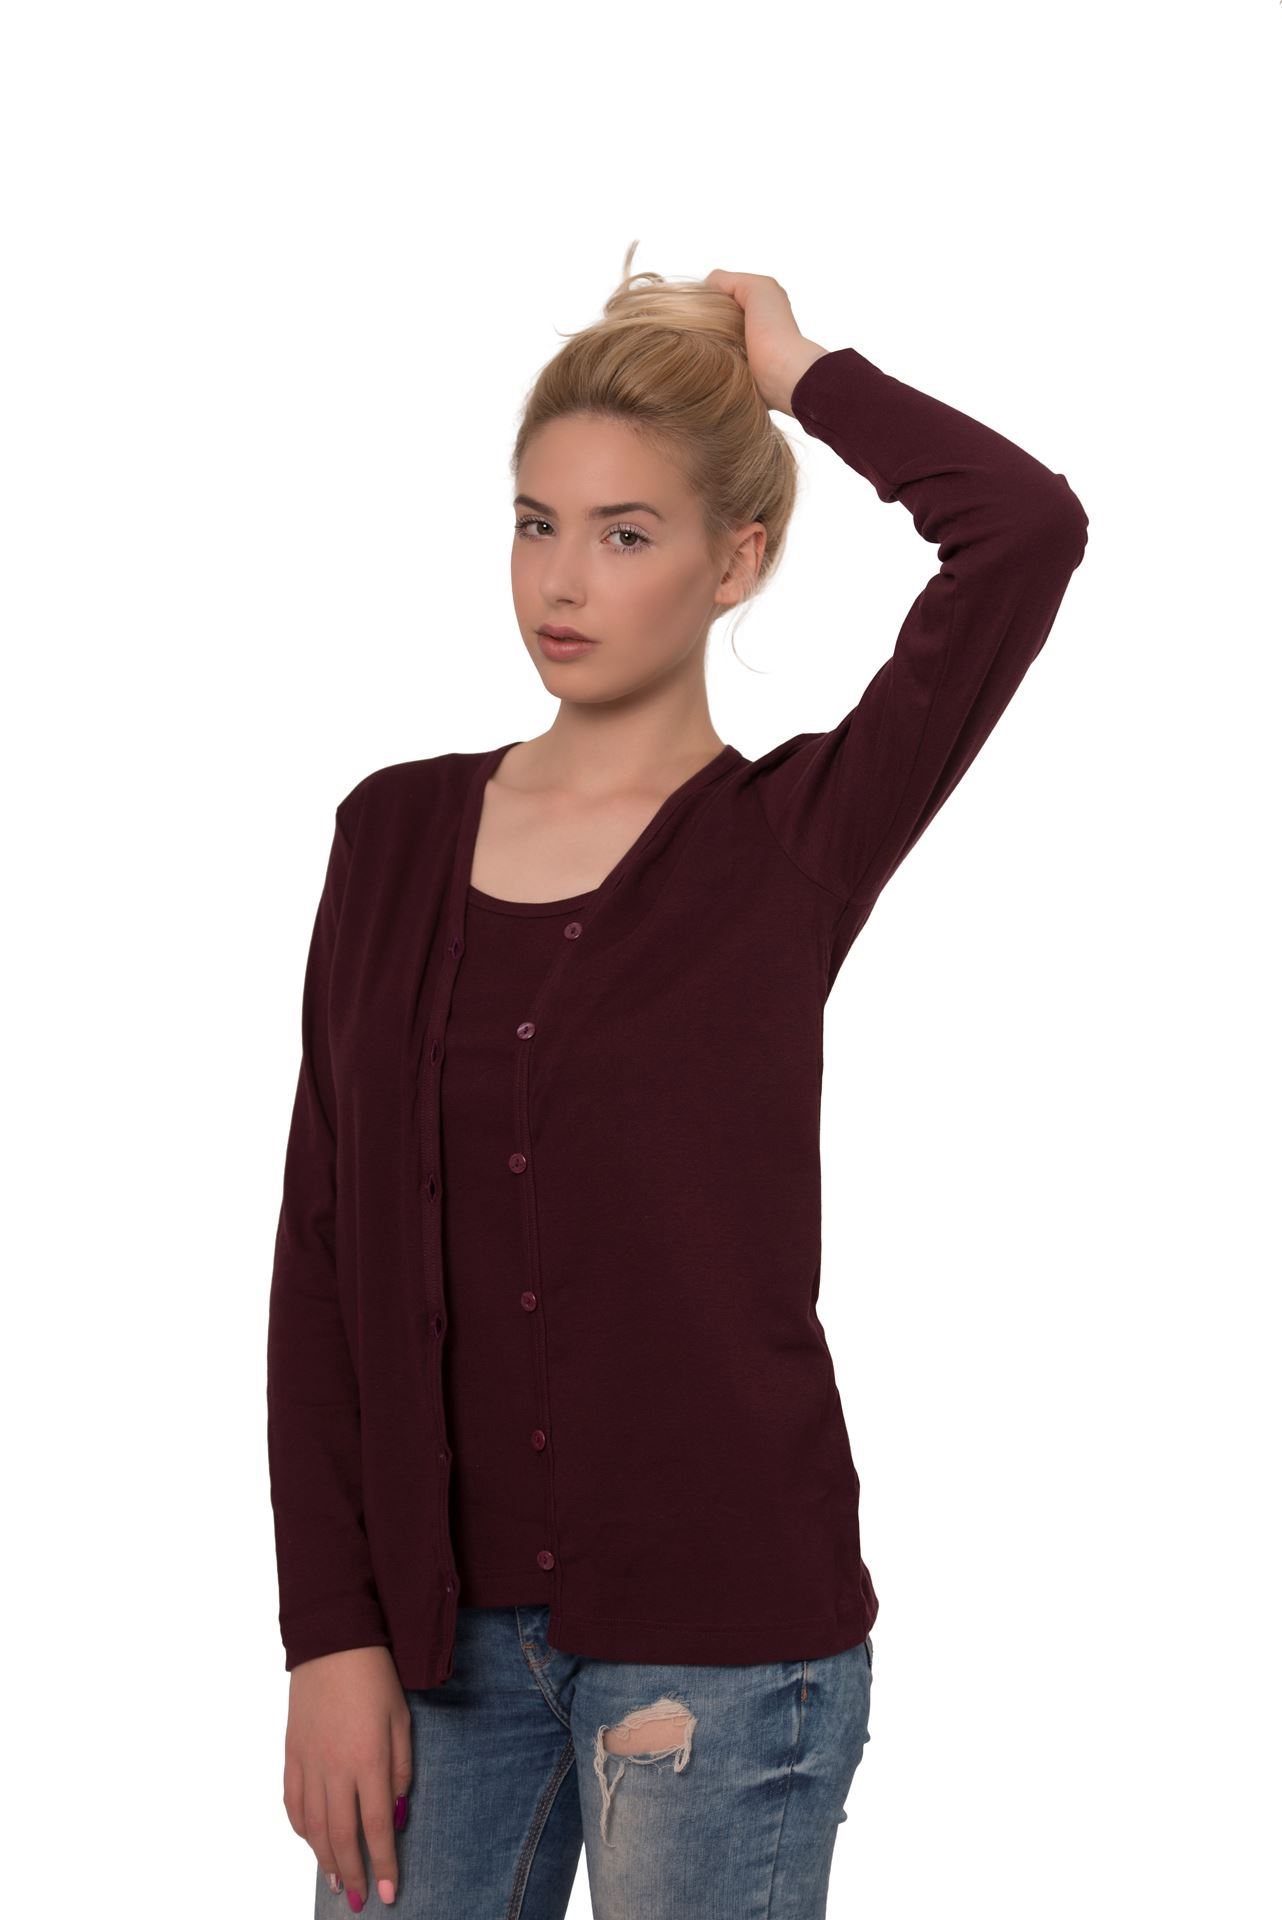 Picture of Women's twin set - shirt with thin straps and cardigan